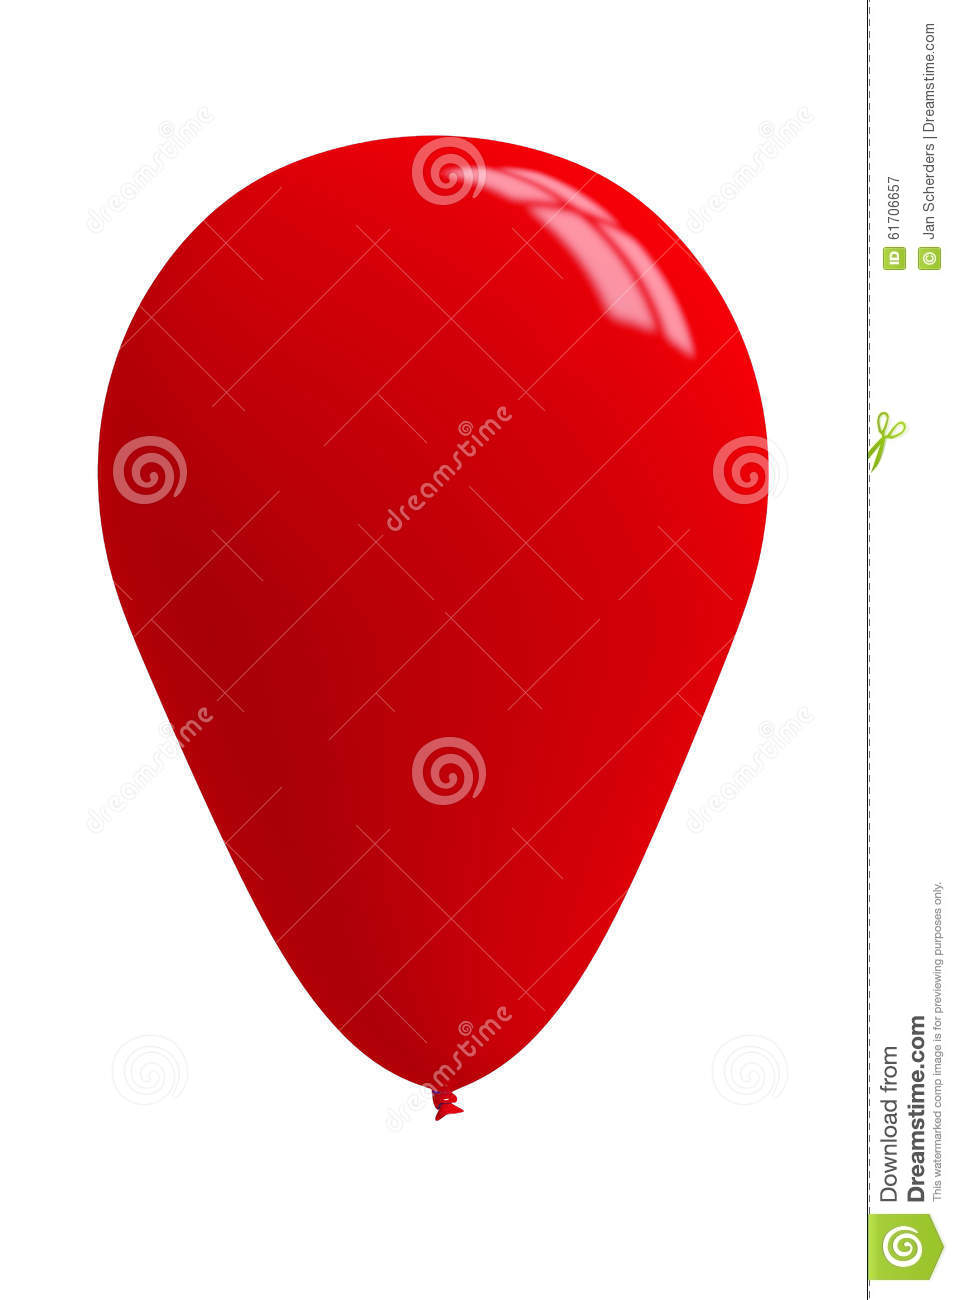 Glossy Red Balloon